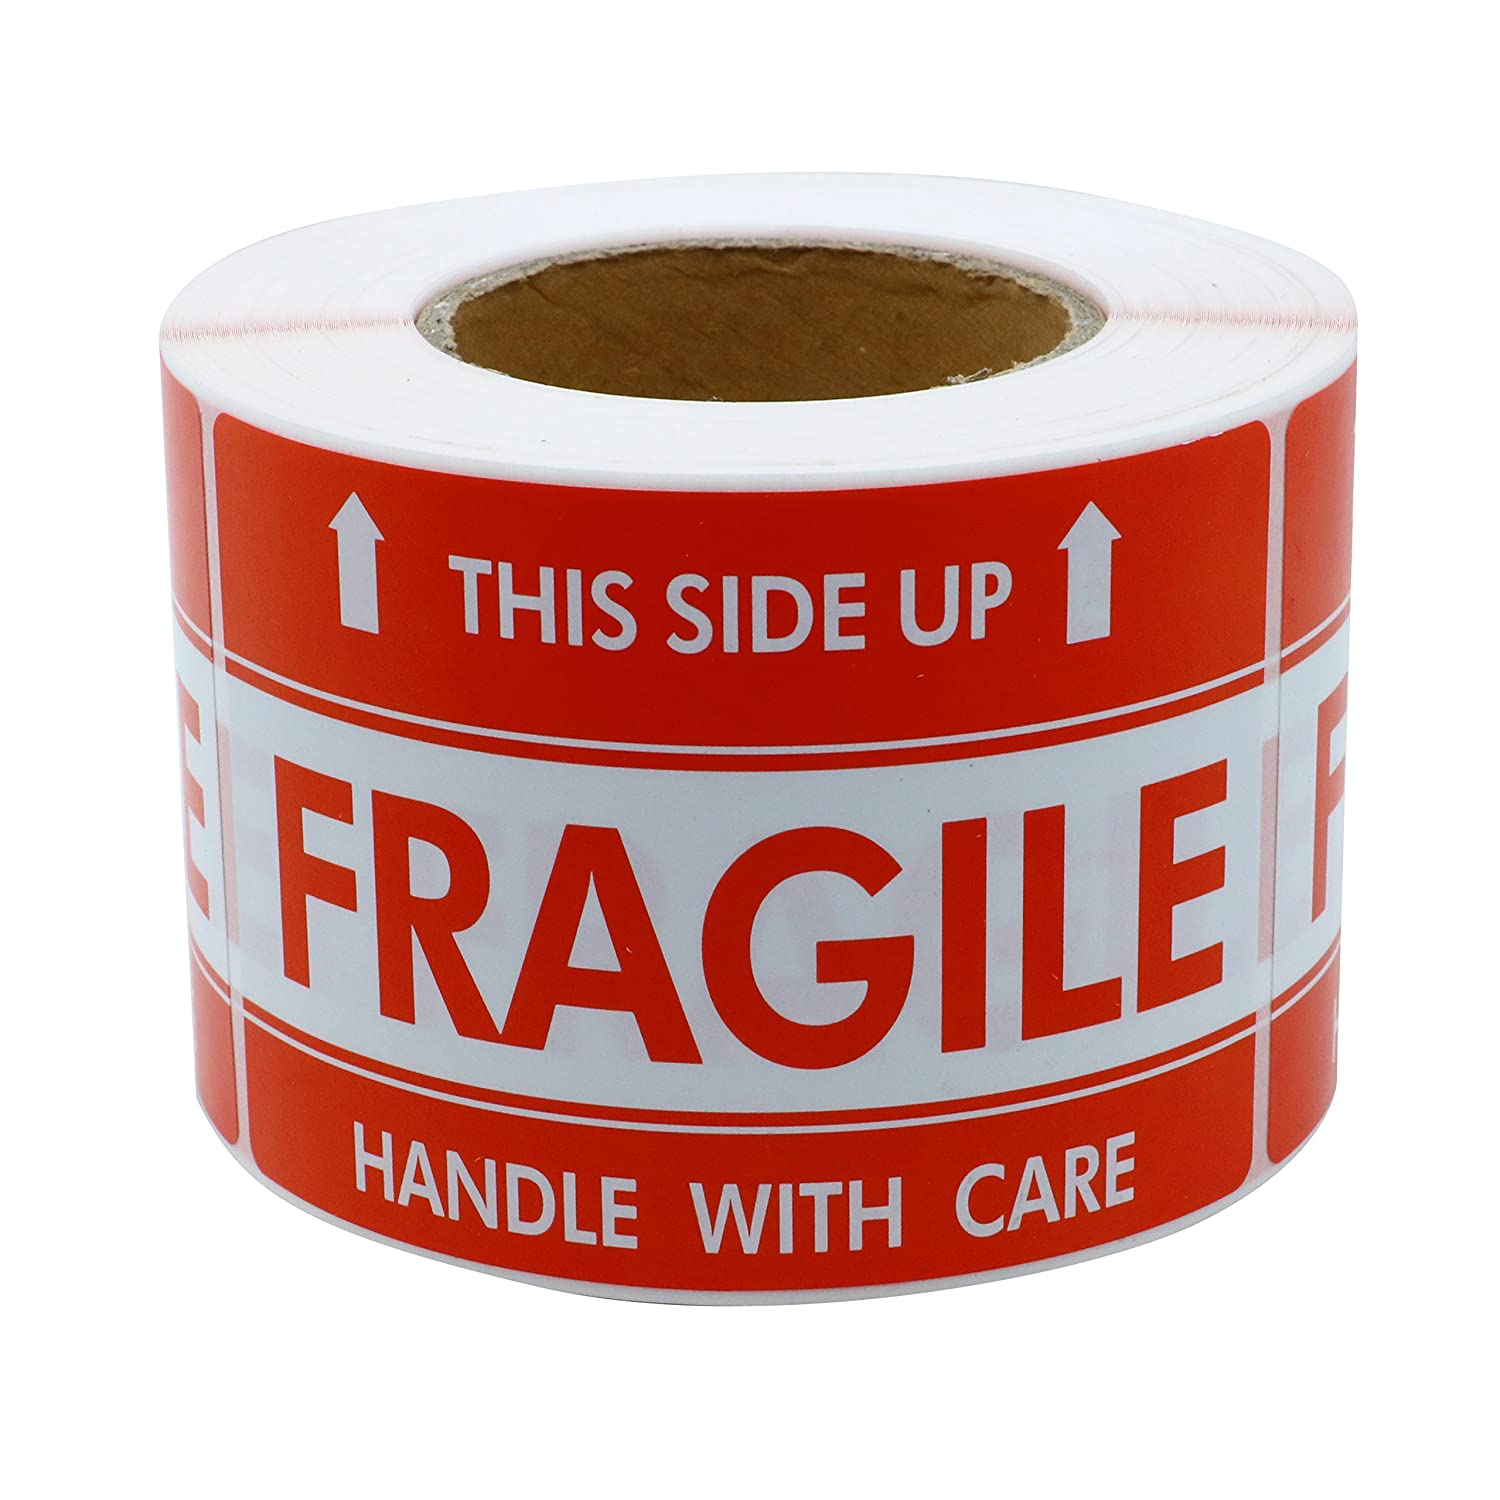 Hybsk 2*3 Handle With Care This Side Up Fragile Stickers Adhesive Label 300 Per Roll